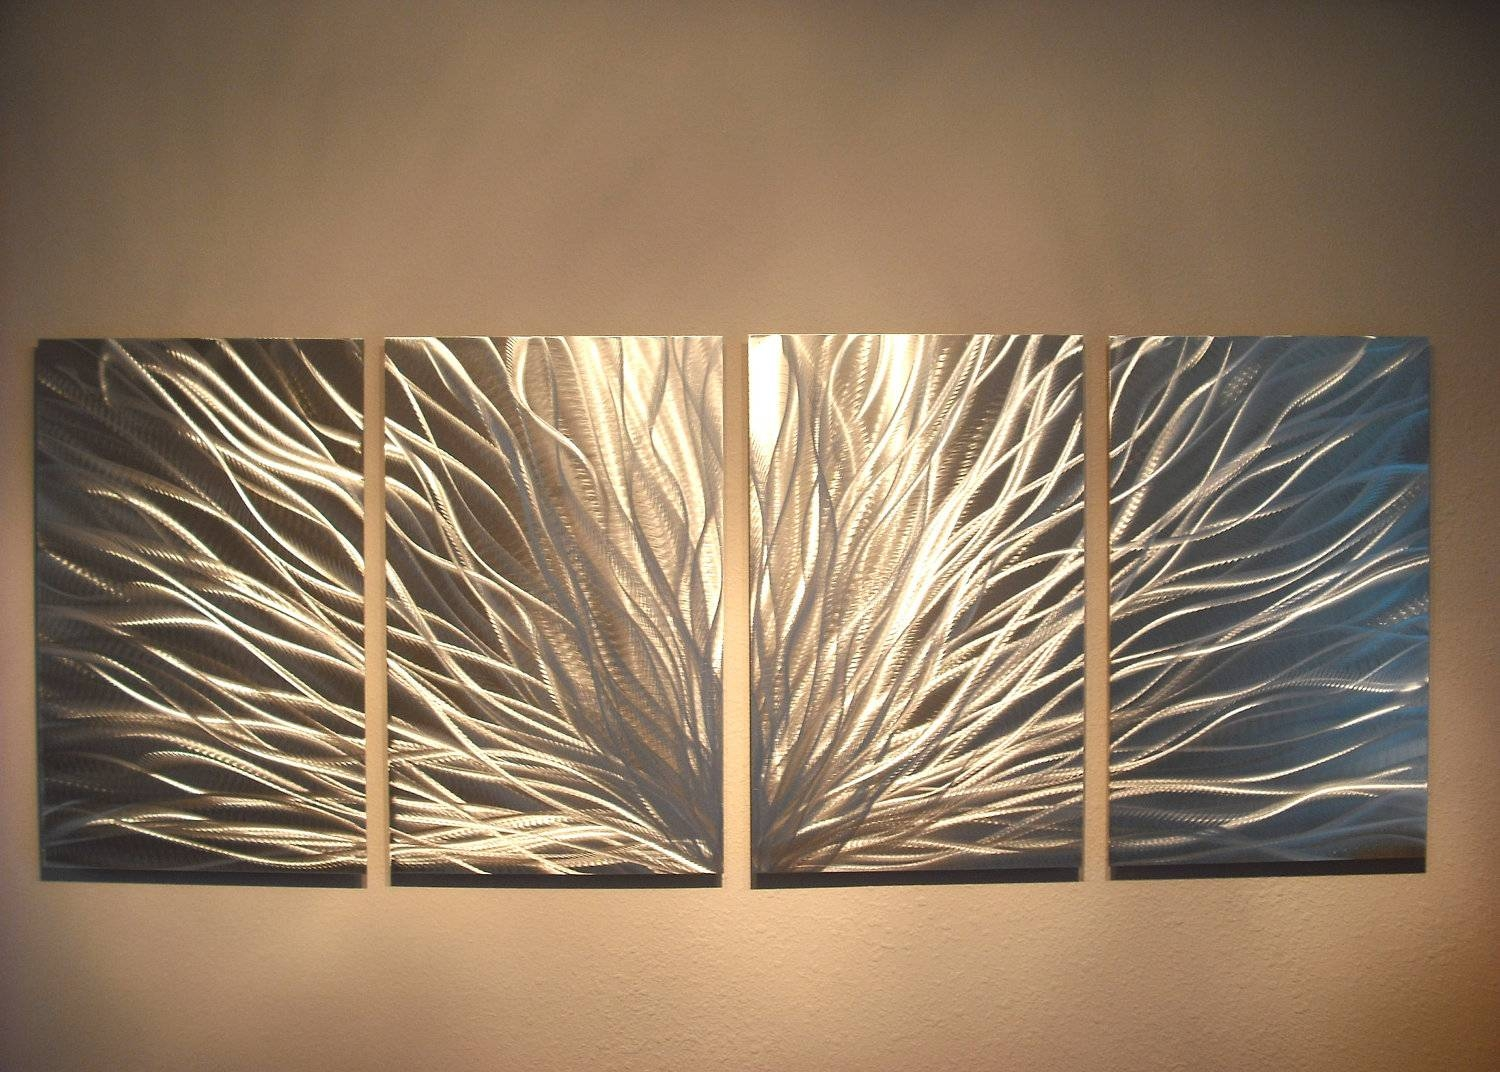 Radiance – Abstract Metal Wall Art Contemporary Modern Decor In Most Current Metal Wall Art (View 19 of 30)